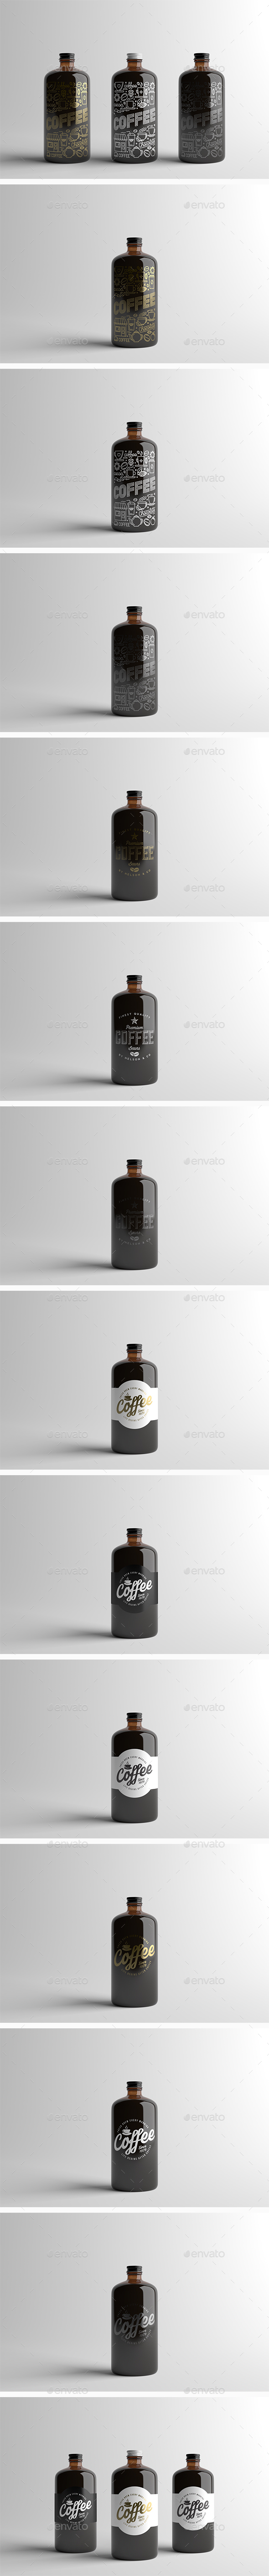 Coffee Bottle Packaging Mock-Up